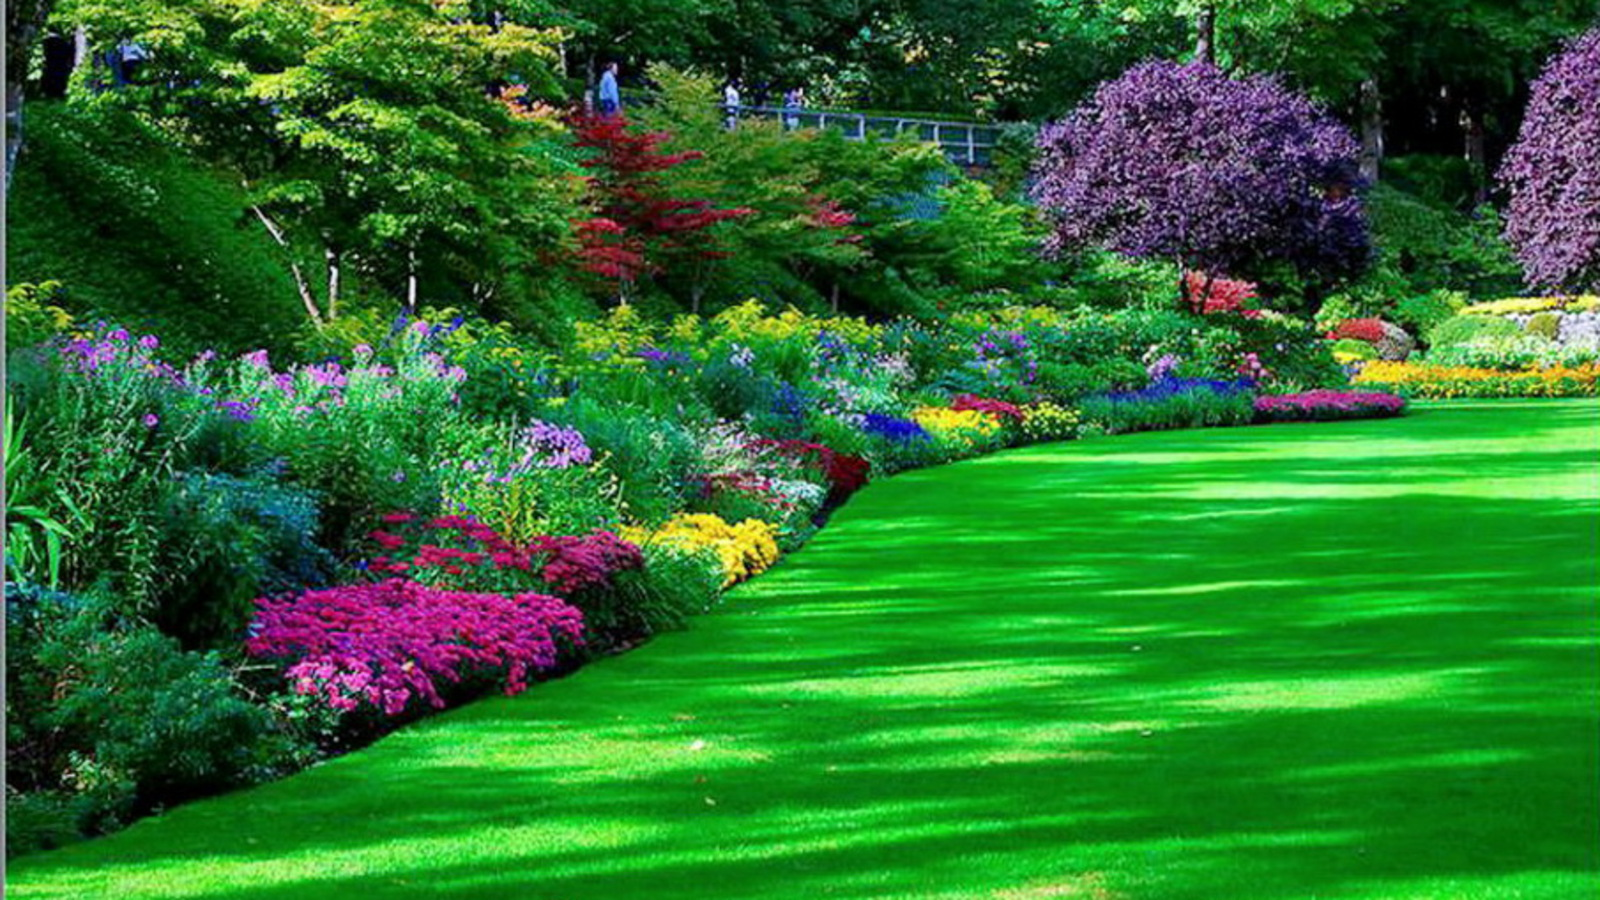 Man Made Garden Park Wallpaper A